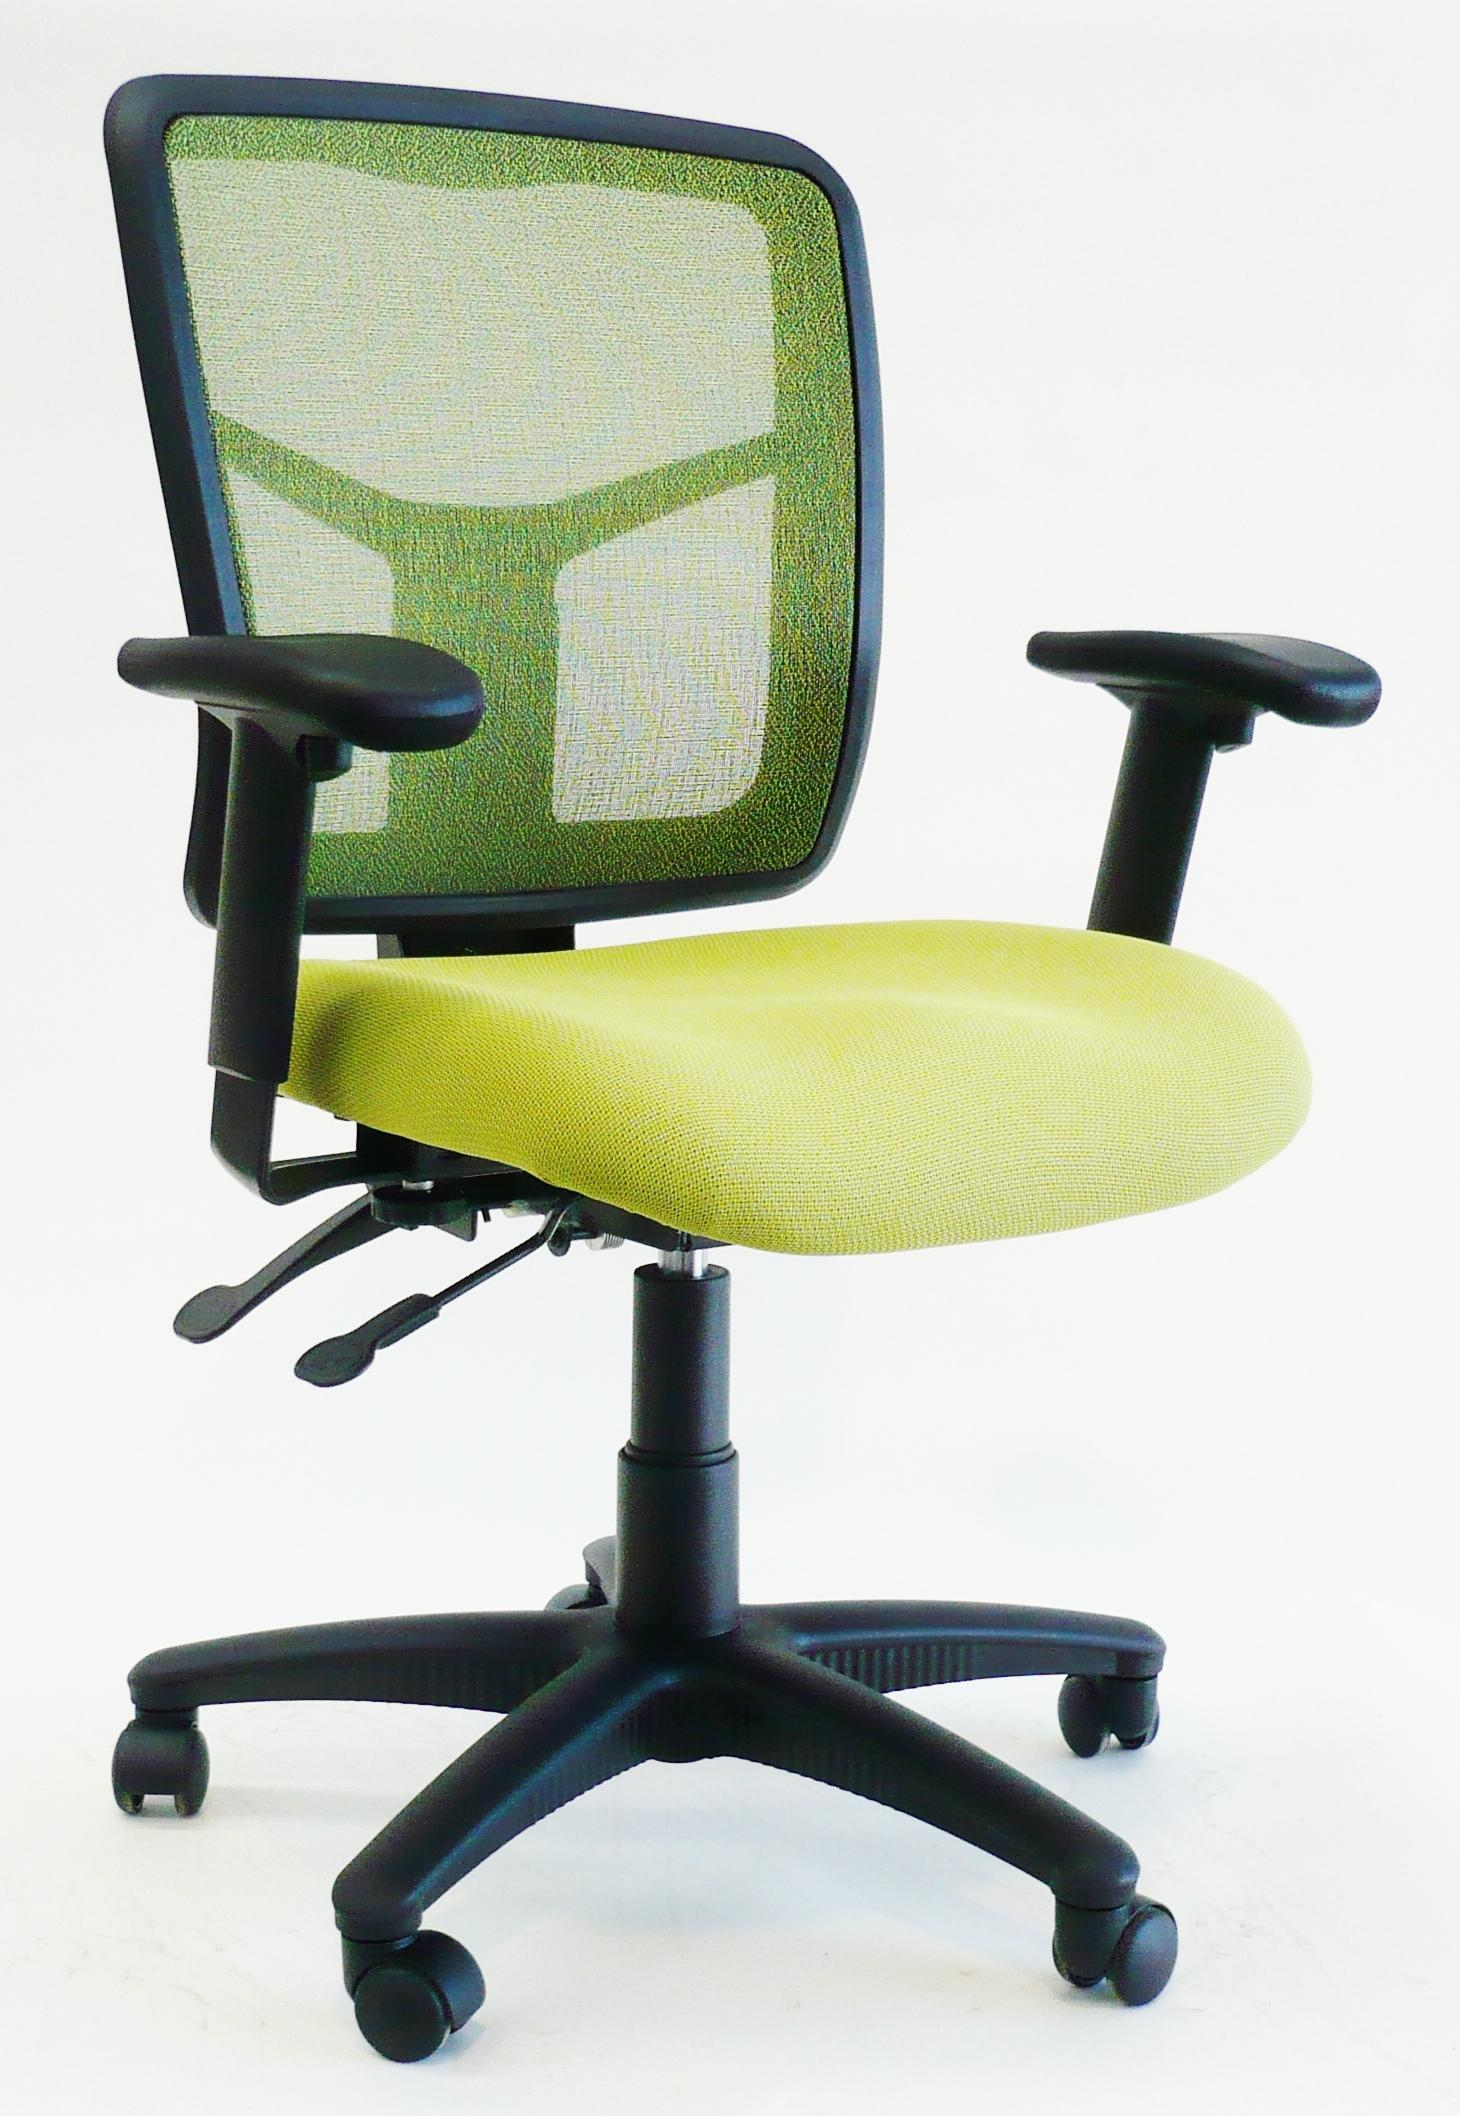 ergonomic chair no armrests swing outdoors cbd - mesh kimberly office 5 colours ams[arms $50.00 pr] furniture store ...